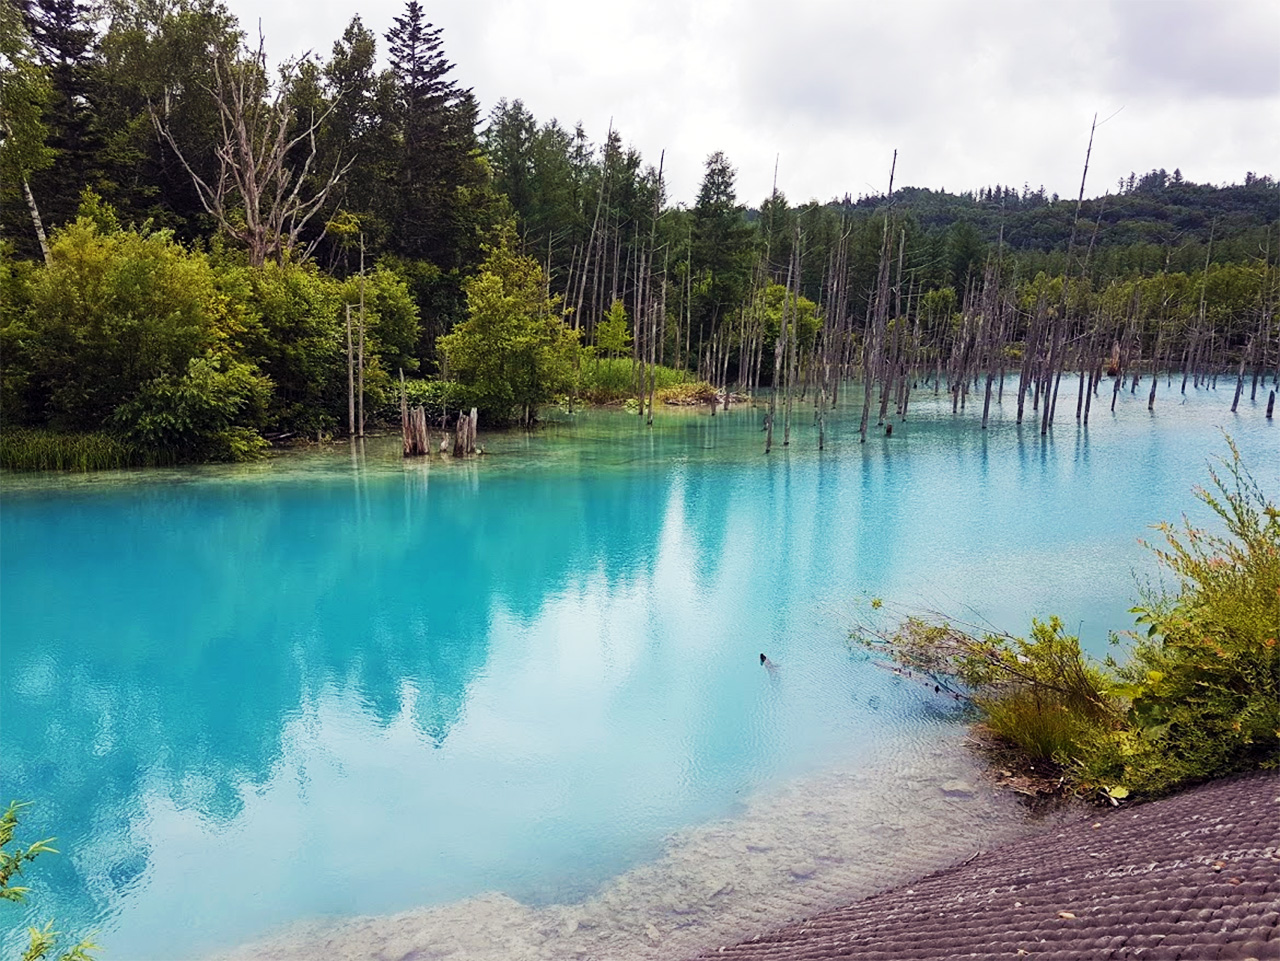 I visited in Summer, and was treated to the most beautiful shade of Turquoise.